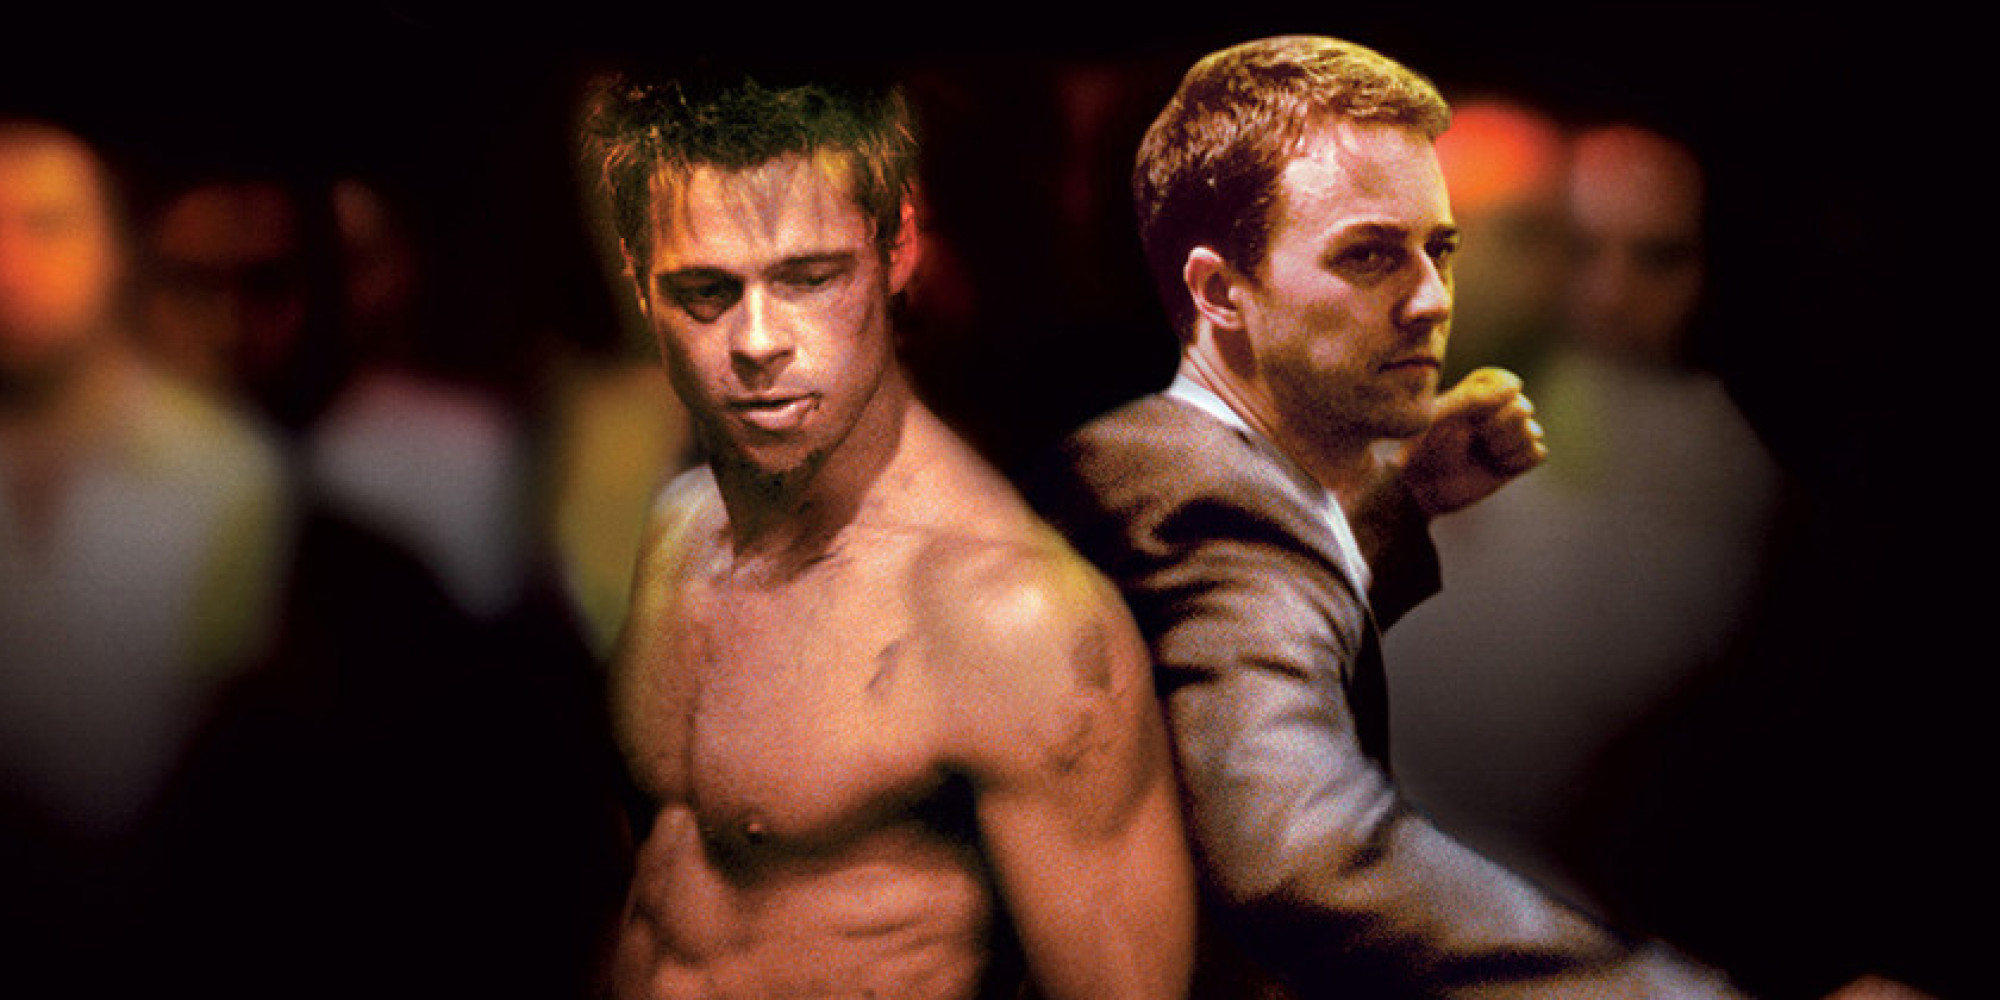 Fight Club (Brad Pitt and Edward Norton)